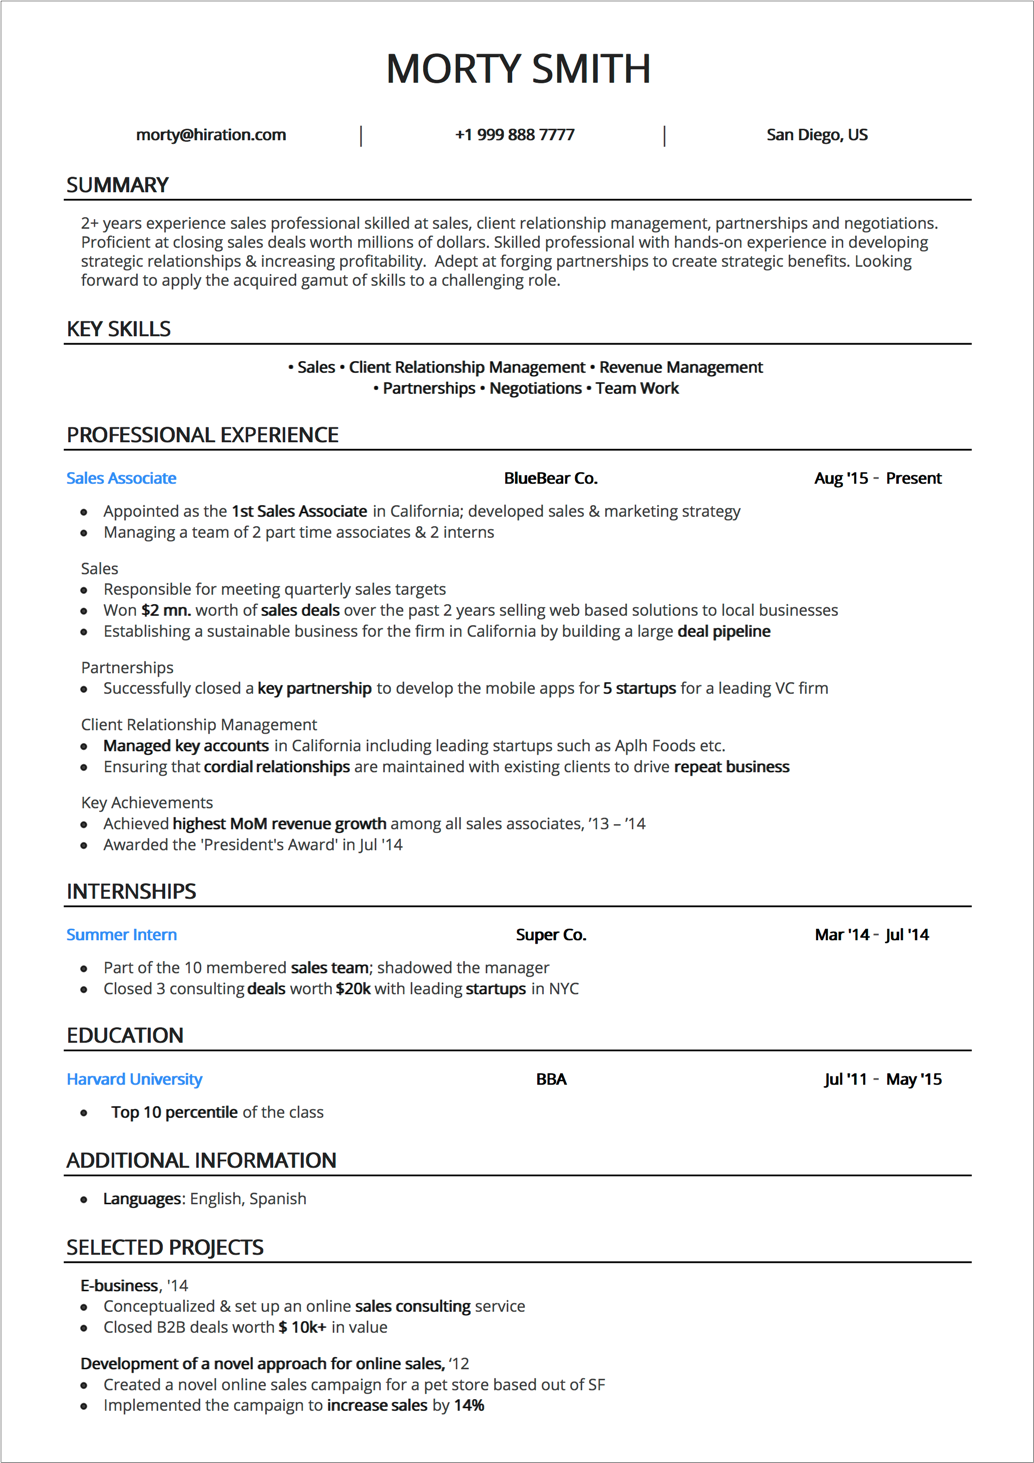 simple_resume_layout